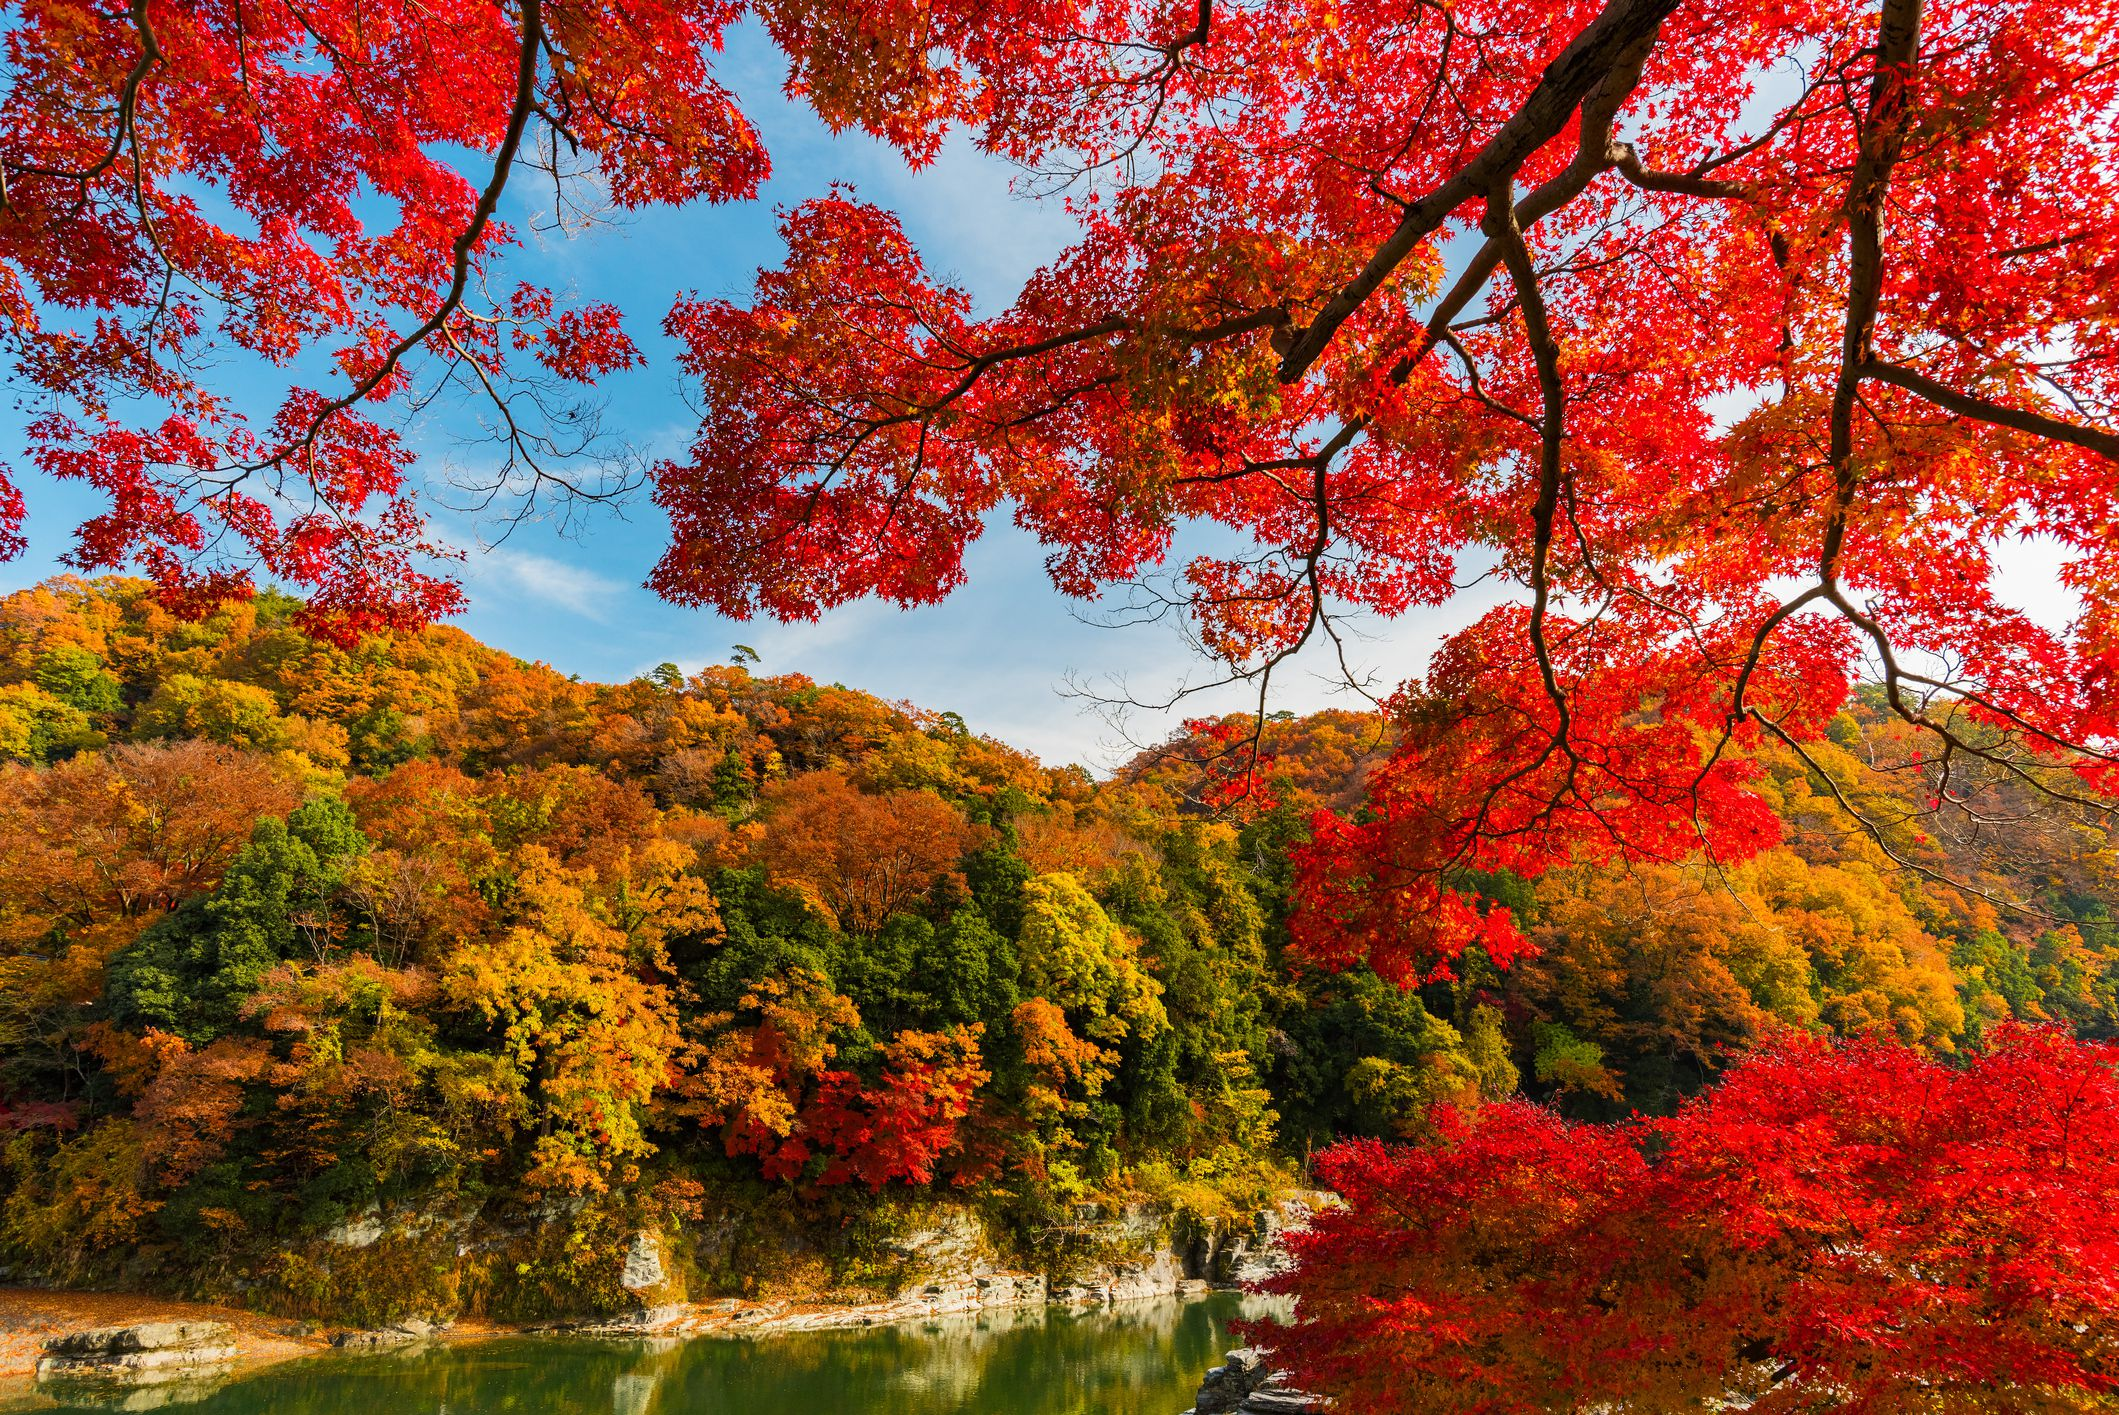 A Complete Fall Color And Autumn Leaf Viewing Guide